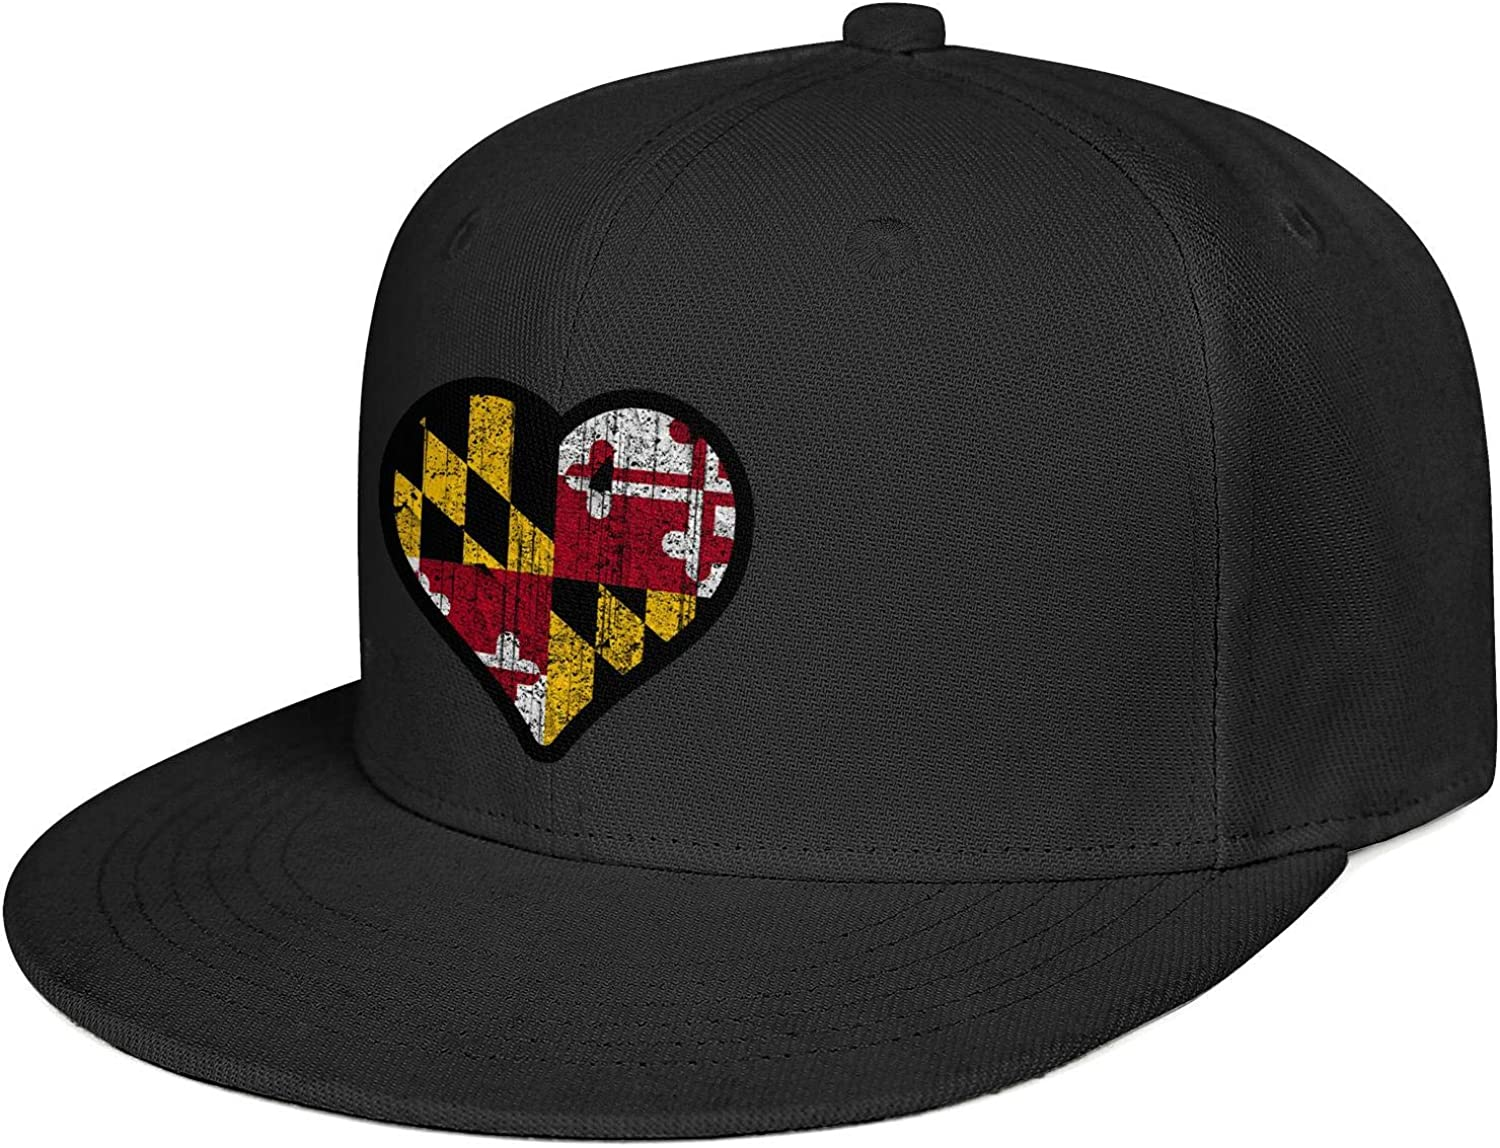 dtykm Maryland Flag Distessed Heart Baseball Caps Fashion Snapback Hats Mens Adjustable Snapback Flat Brimmed Hats for Men